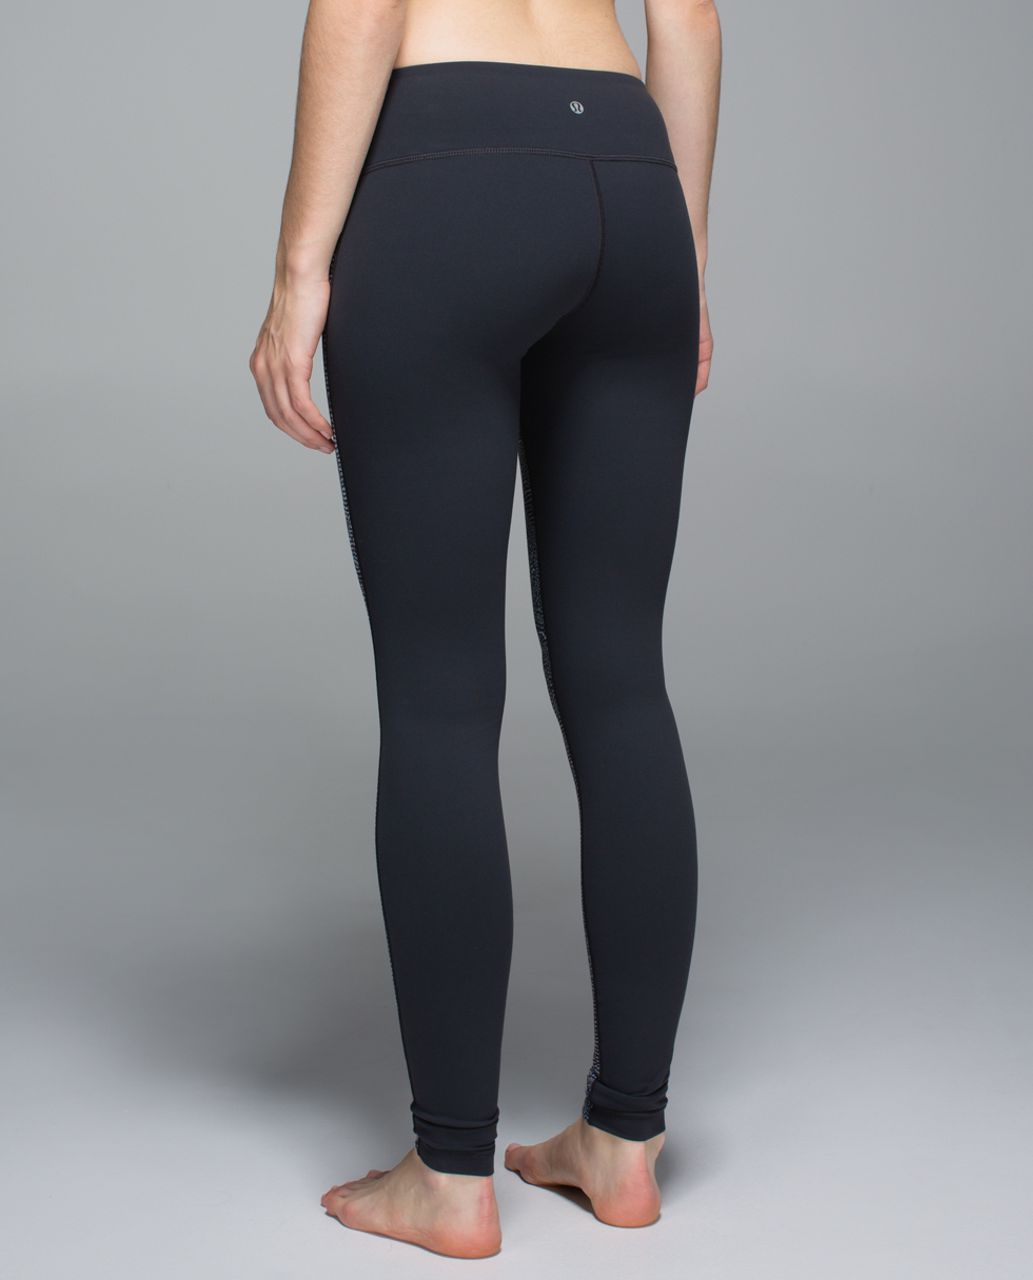 Lululemon Wunder Under Pant *Full-On Luon - Bead Envy Silver Spoon Multi / Deep Coal